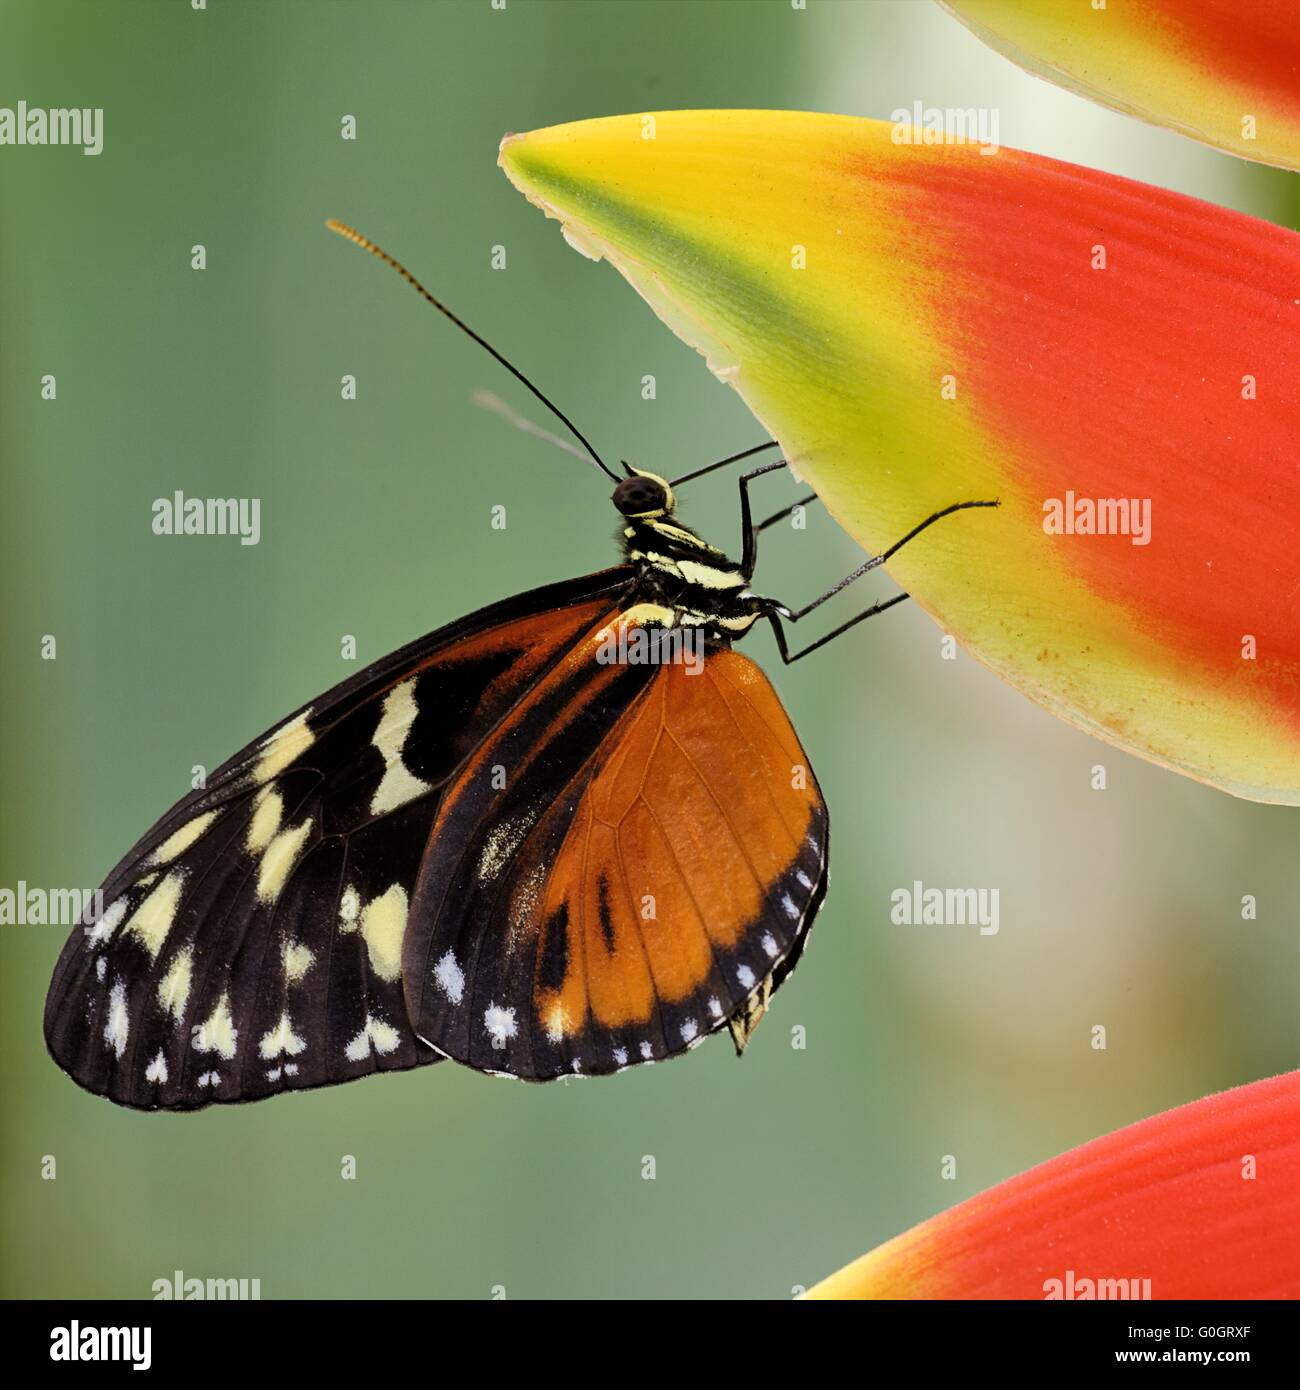 Tiger-Longwing on a Hanging Lobster Claw - Stock Image